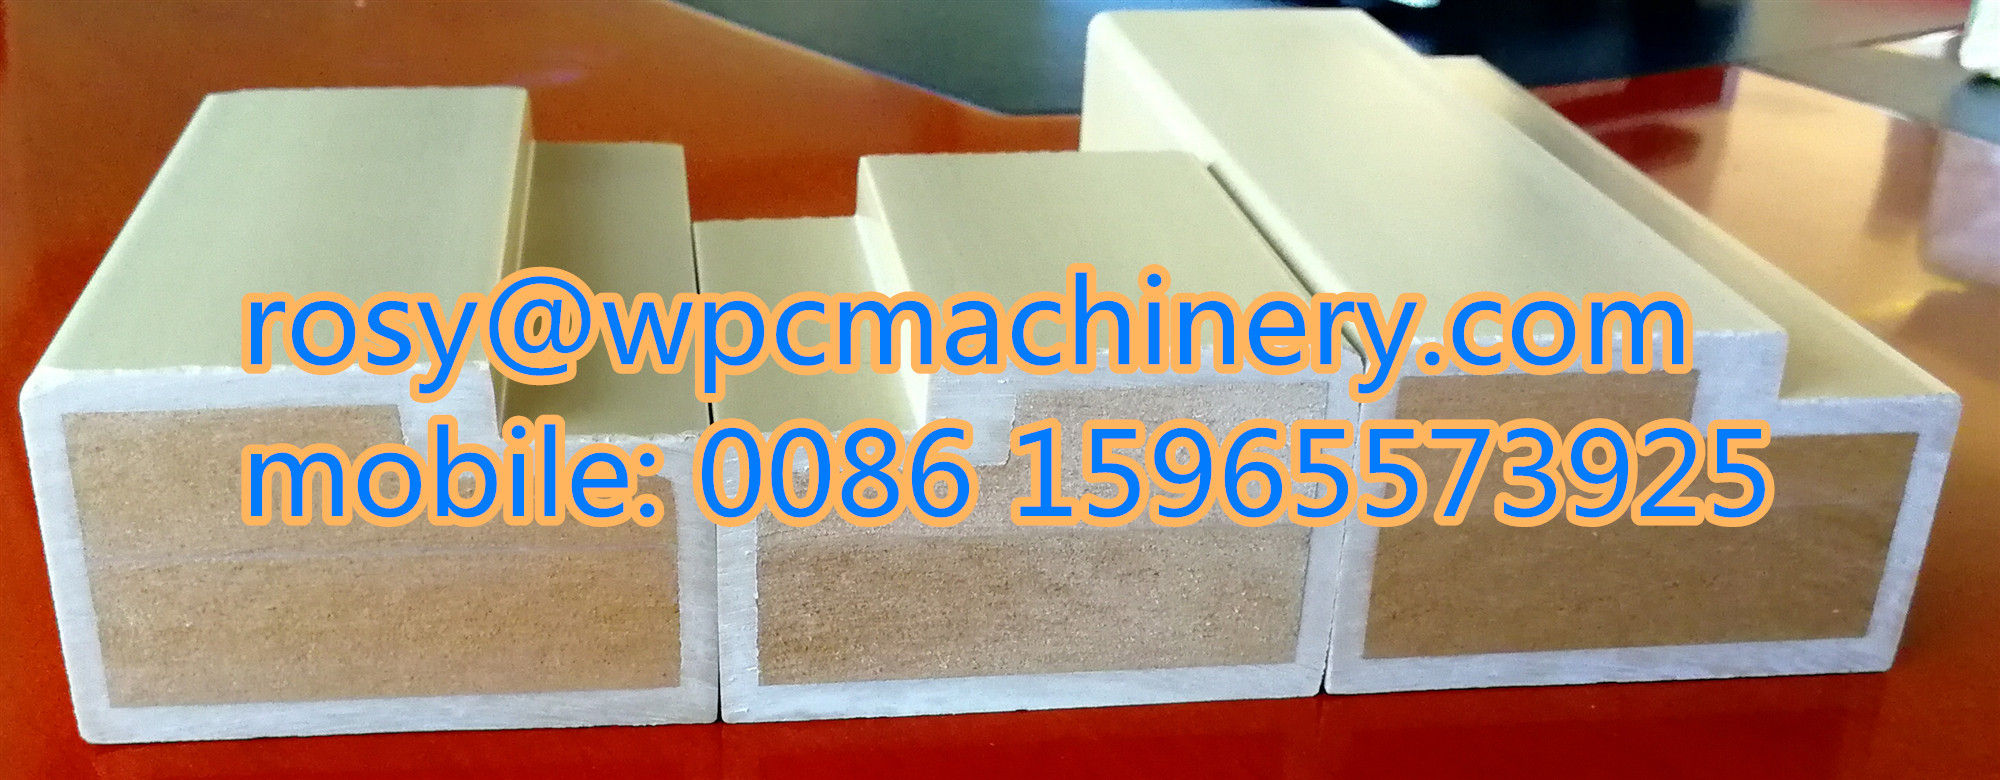 Wood reinforced WPC door frame machine for india customer